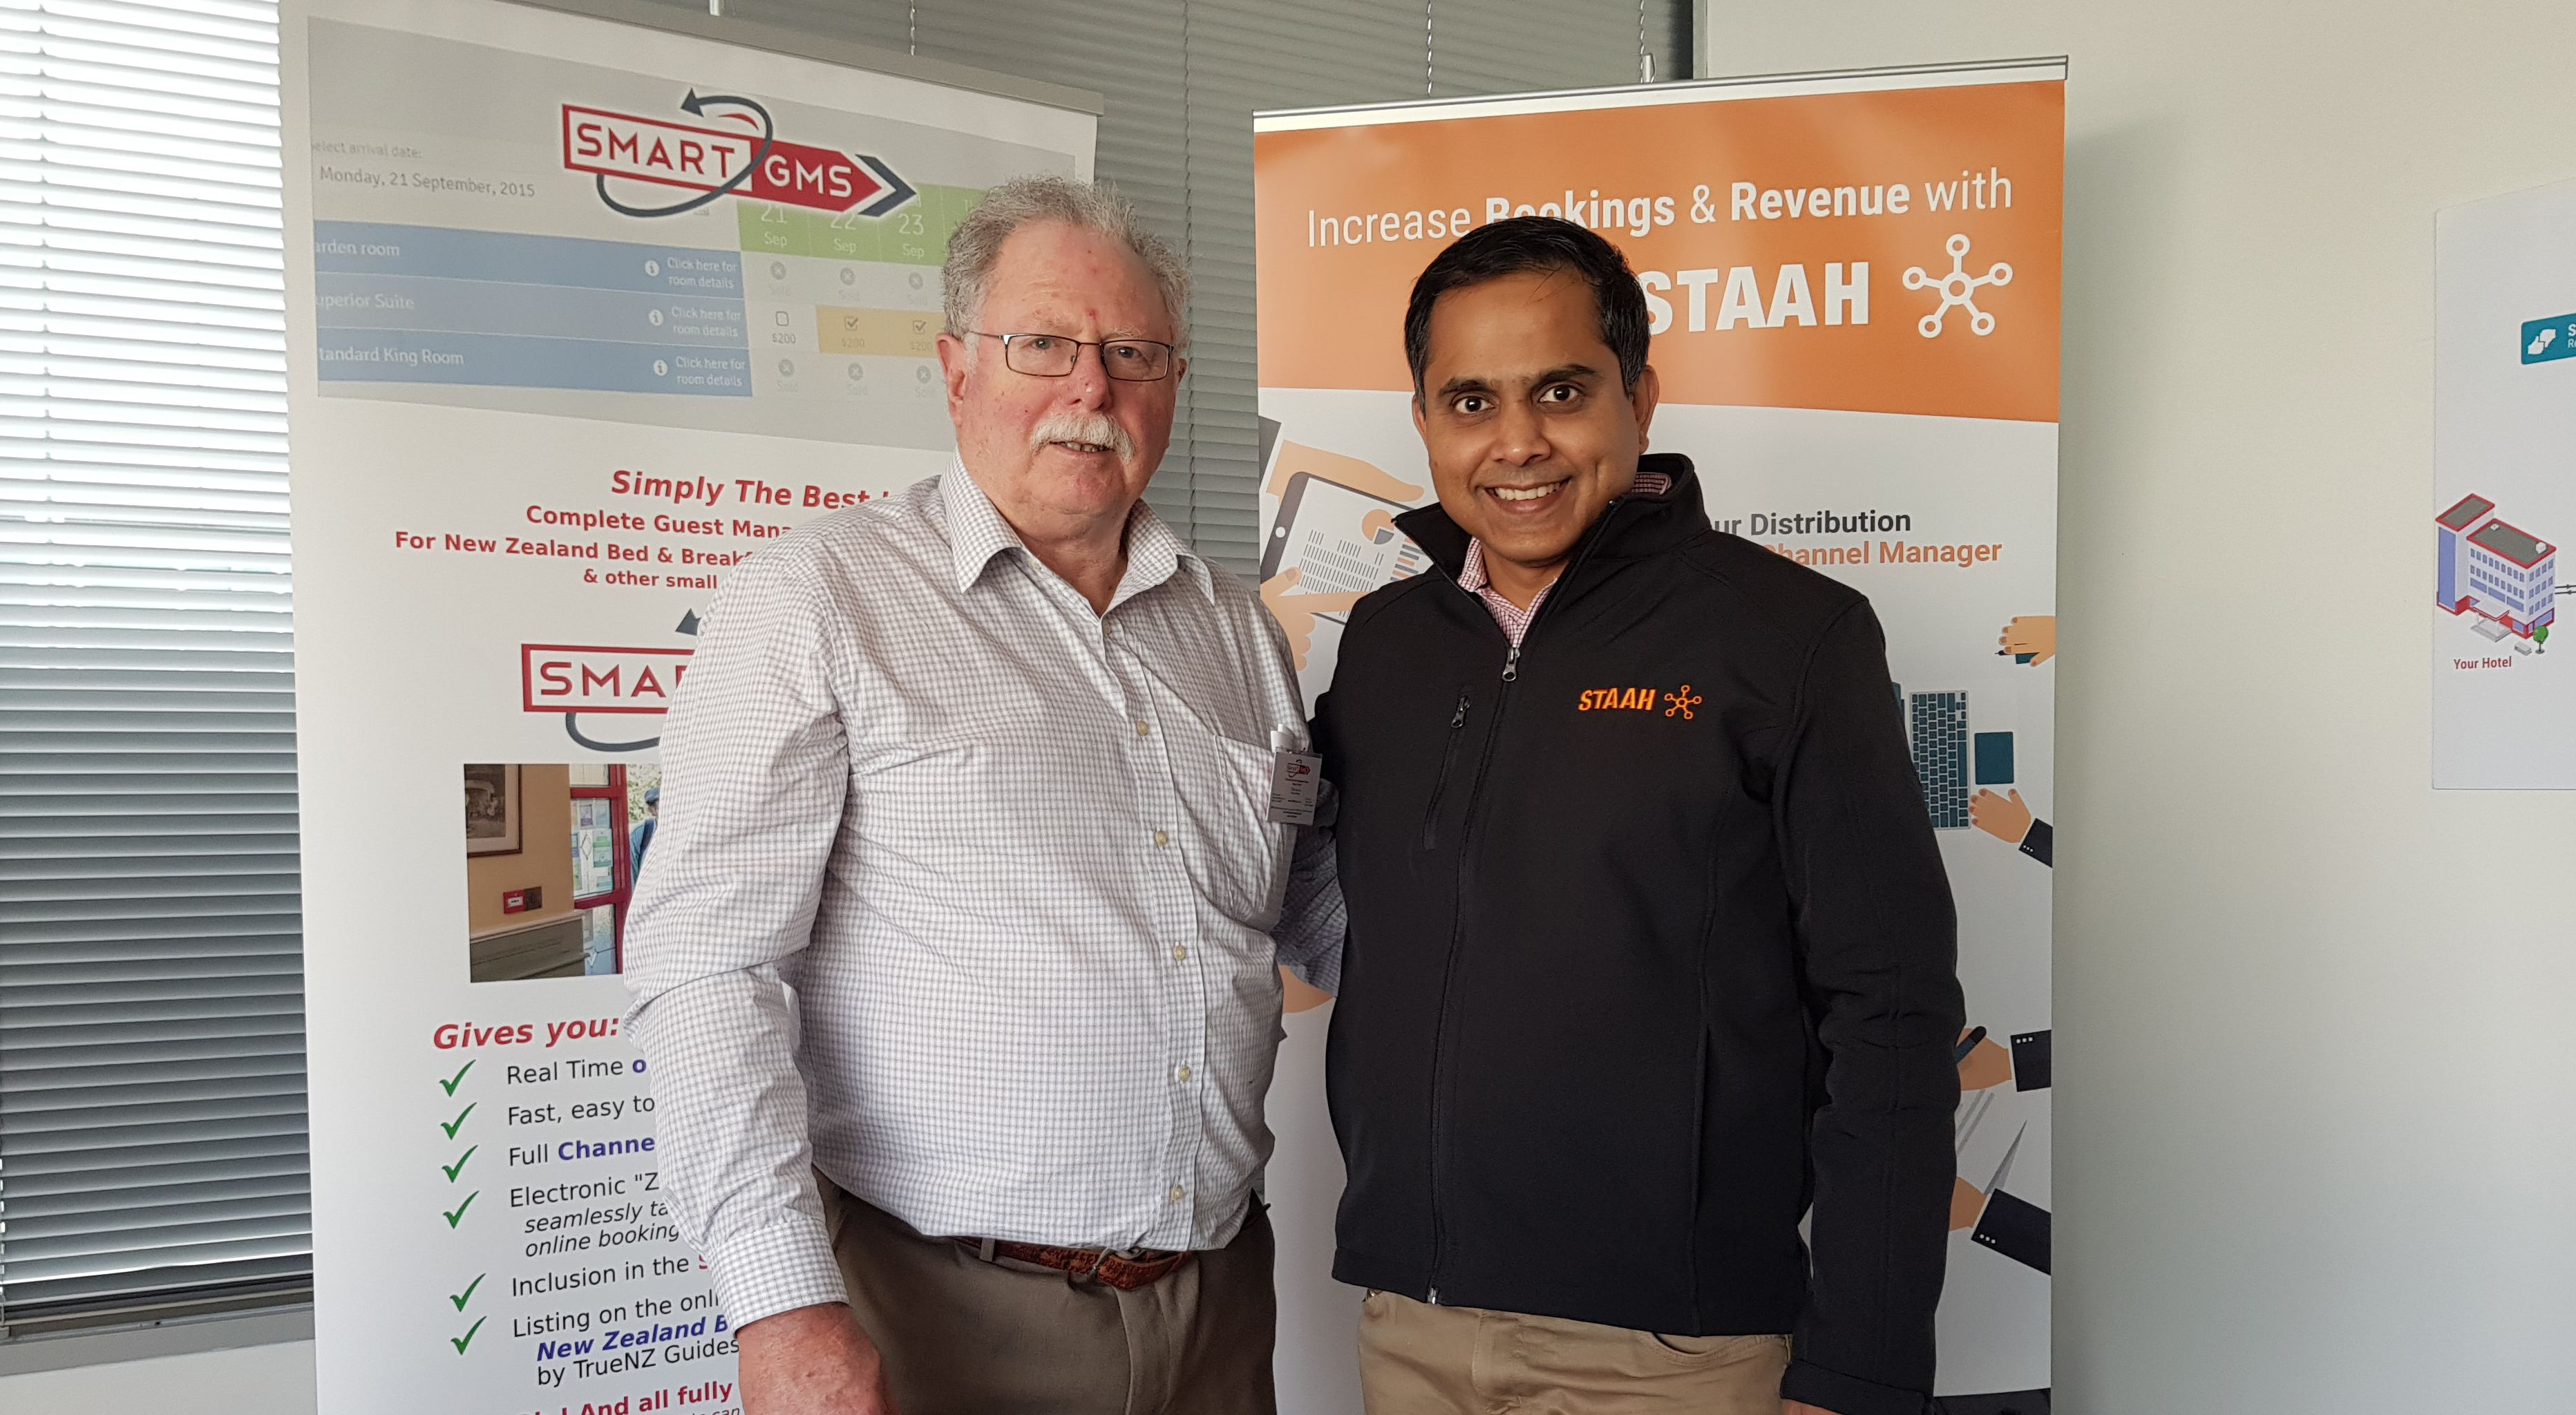 Mike Raymer from TrueNZ with Edwin Saldanha from STAAH